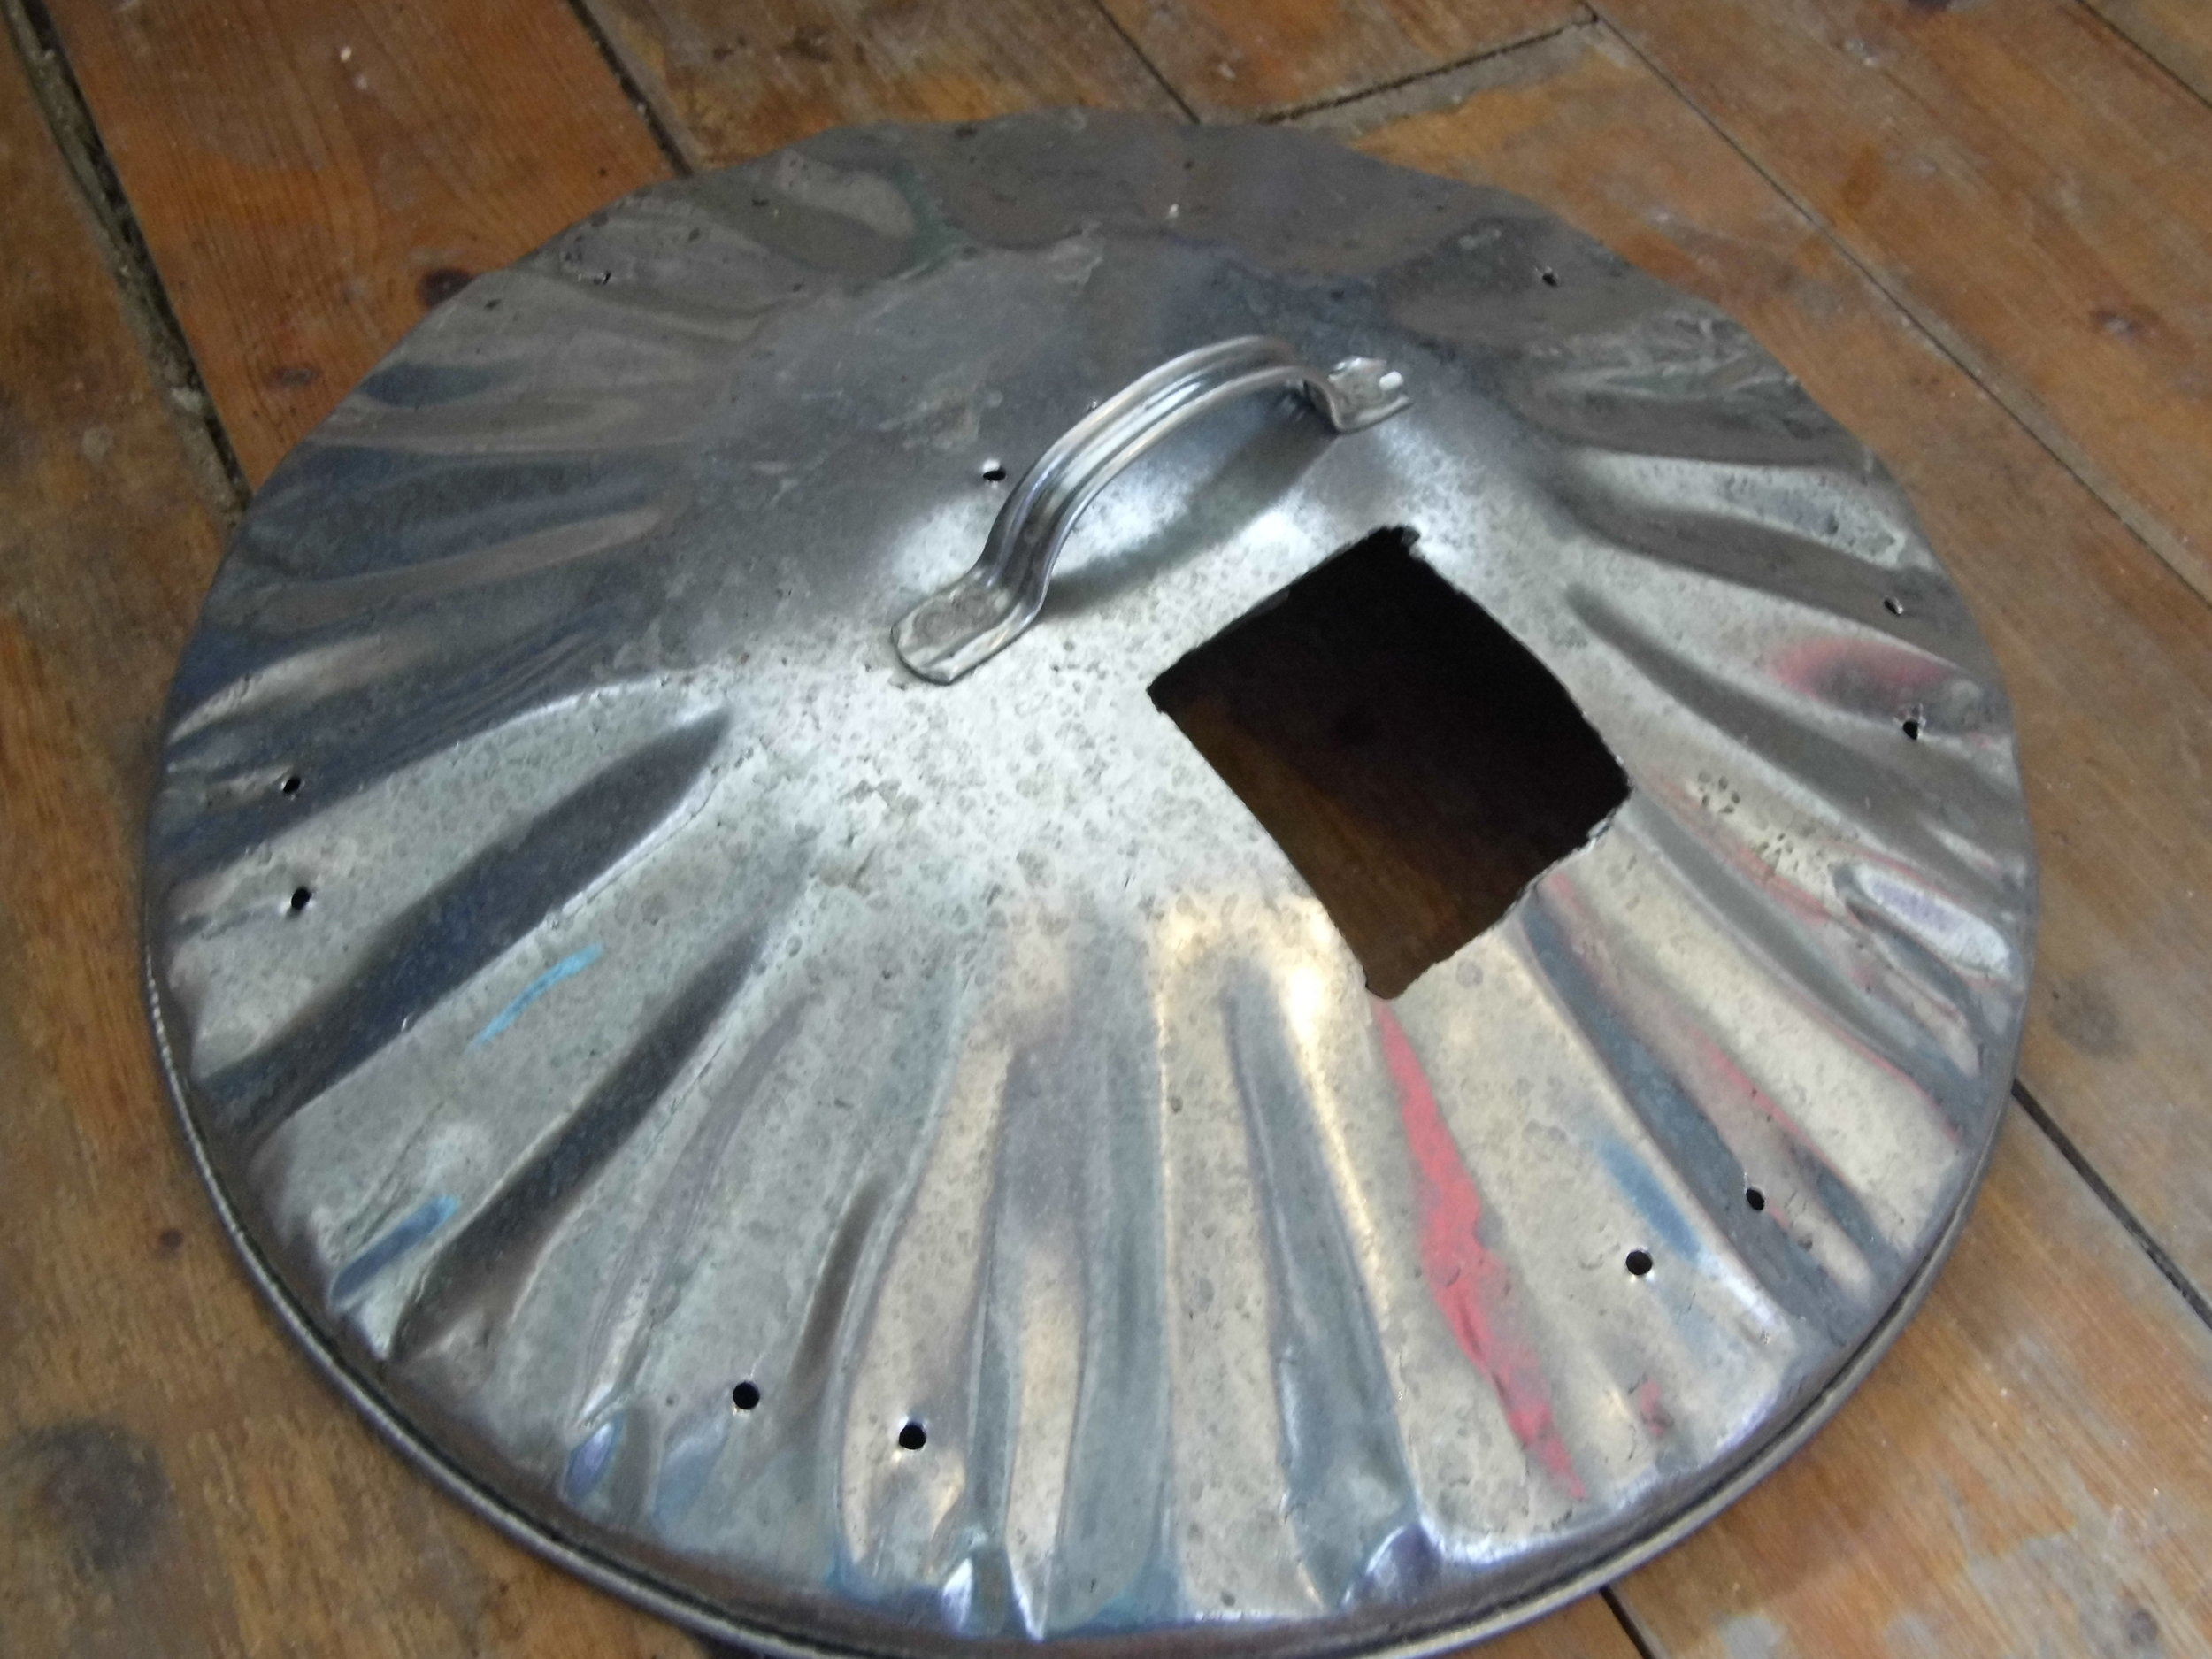 1. A hole is cut in the lid at least 10cm/4inches in diameter. Pairs of holes are drilled at intervals around the edge of the lid and also near the centre.